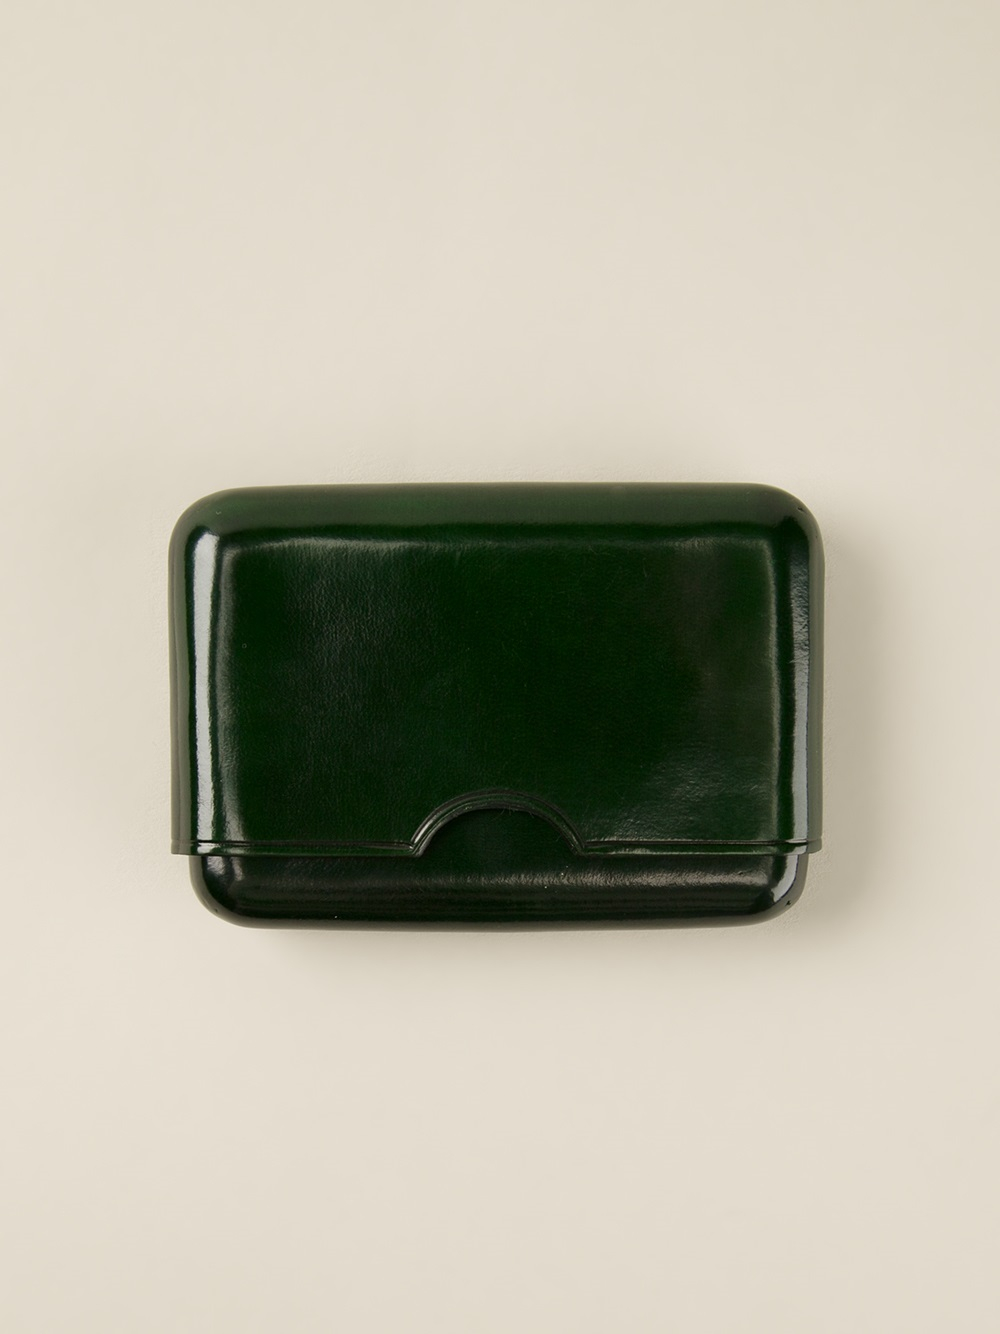 Lyst - Il Bussetto Business Card Holder in Green for Men